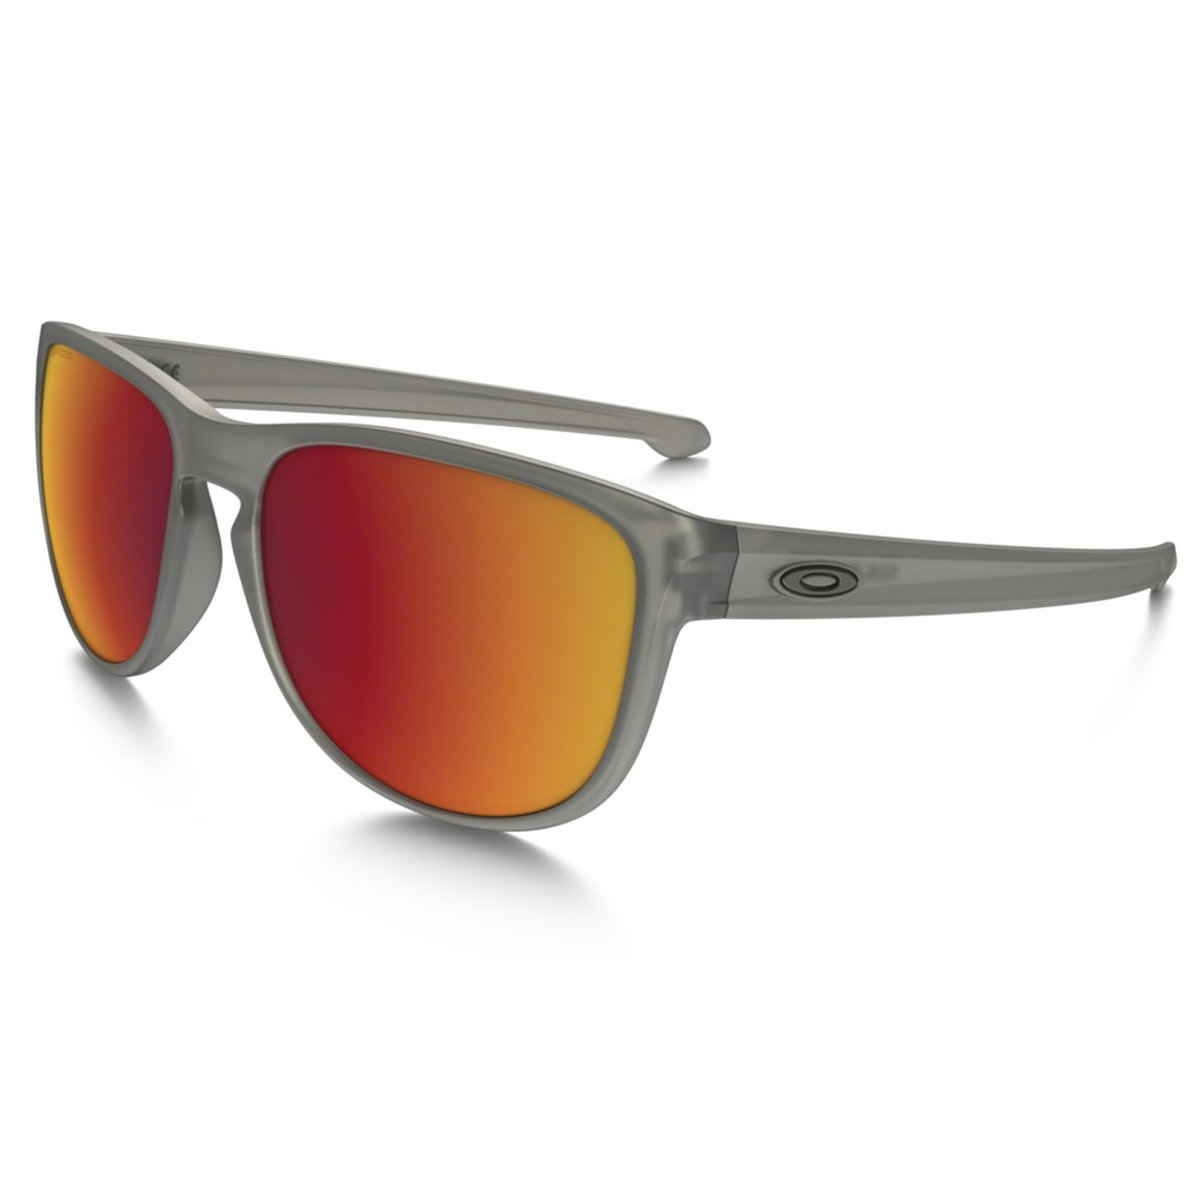 (オークリー) OAKLEY サングラス SLIVER R/スリバーR B01DKJVTHA US One Size-(FREE サイズ)|Matte Grey Ink / Torch Iridium Polarized Matte Grey Ink / Torch Iridium Polarized US One Size-(FREE サイズ)